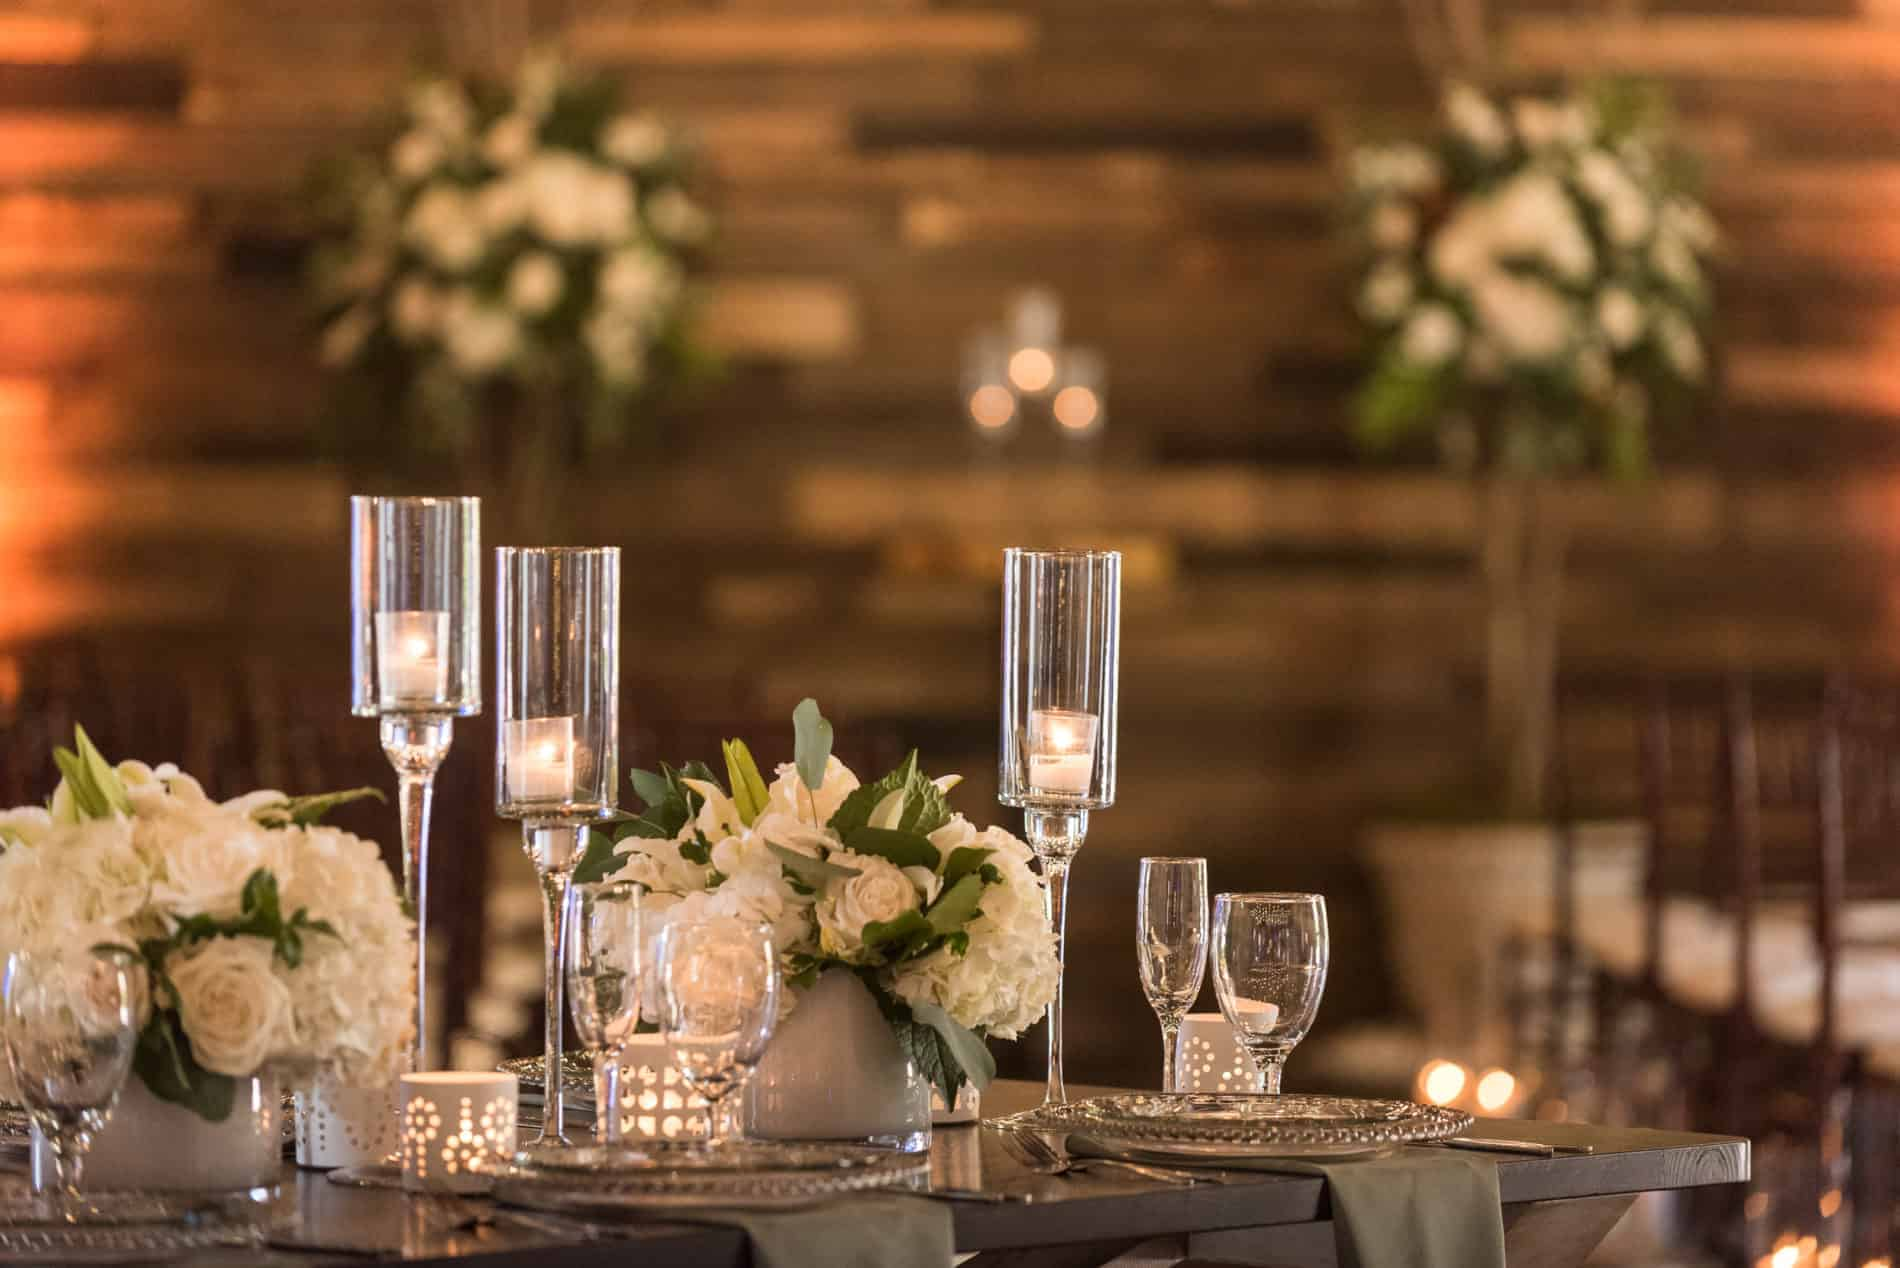 Green and White Centerpiece Ideas in contrast to a Rustic Farm Table